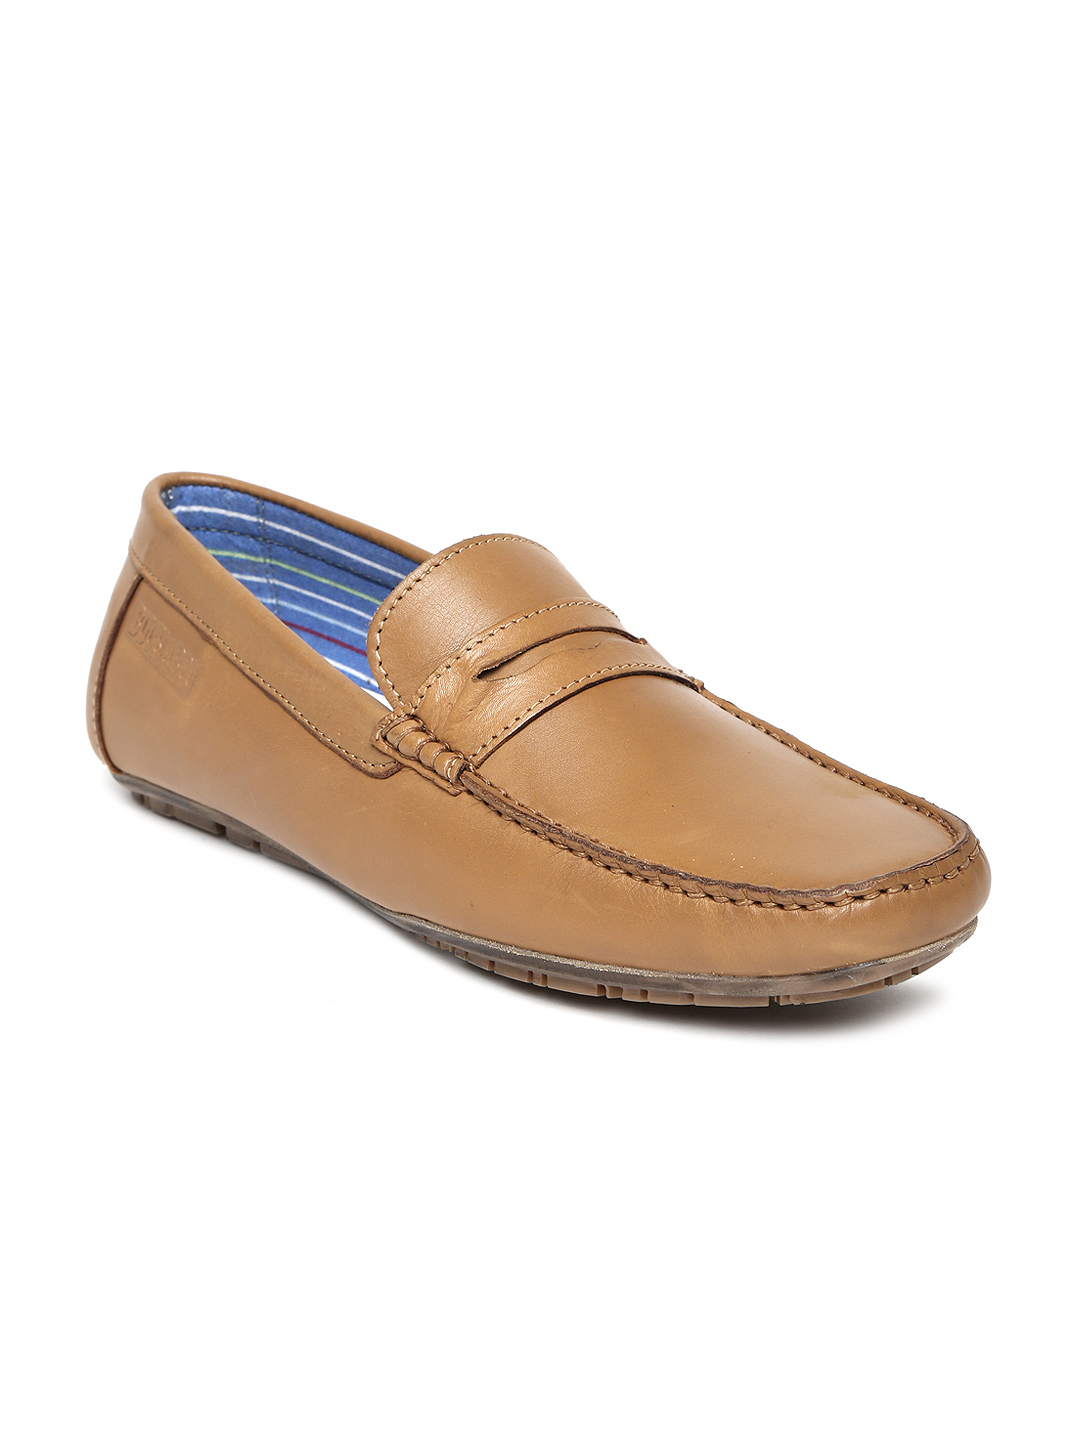 Ucb Loafers India - 28 Images - United Colors Of Benetton Formal Shoes Price In India Buy Buy ...